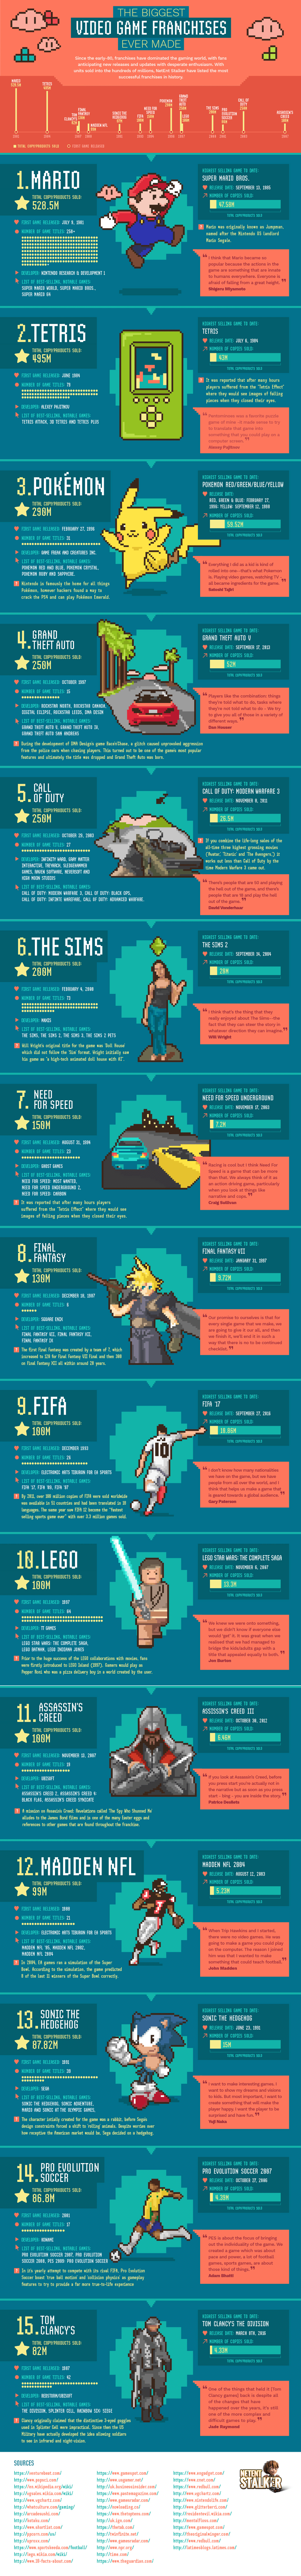 Success Stories of the Biggest Video Game Franchises - Infographic